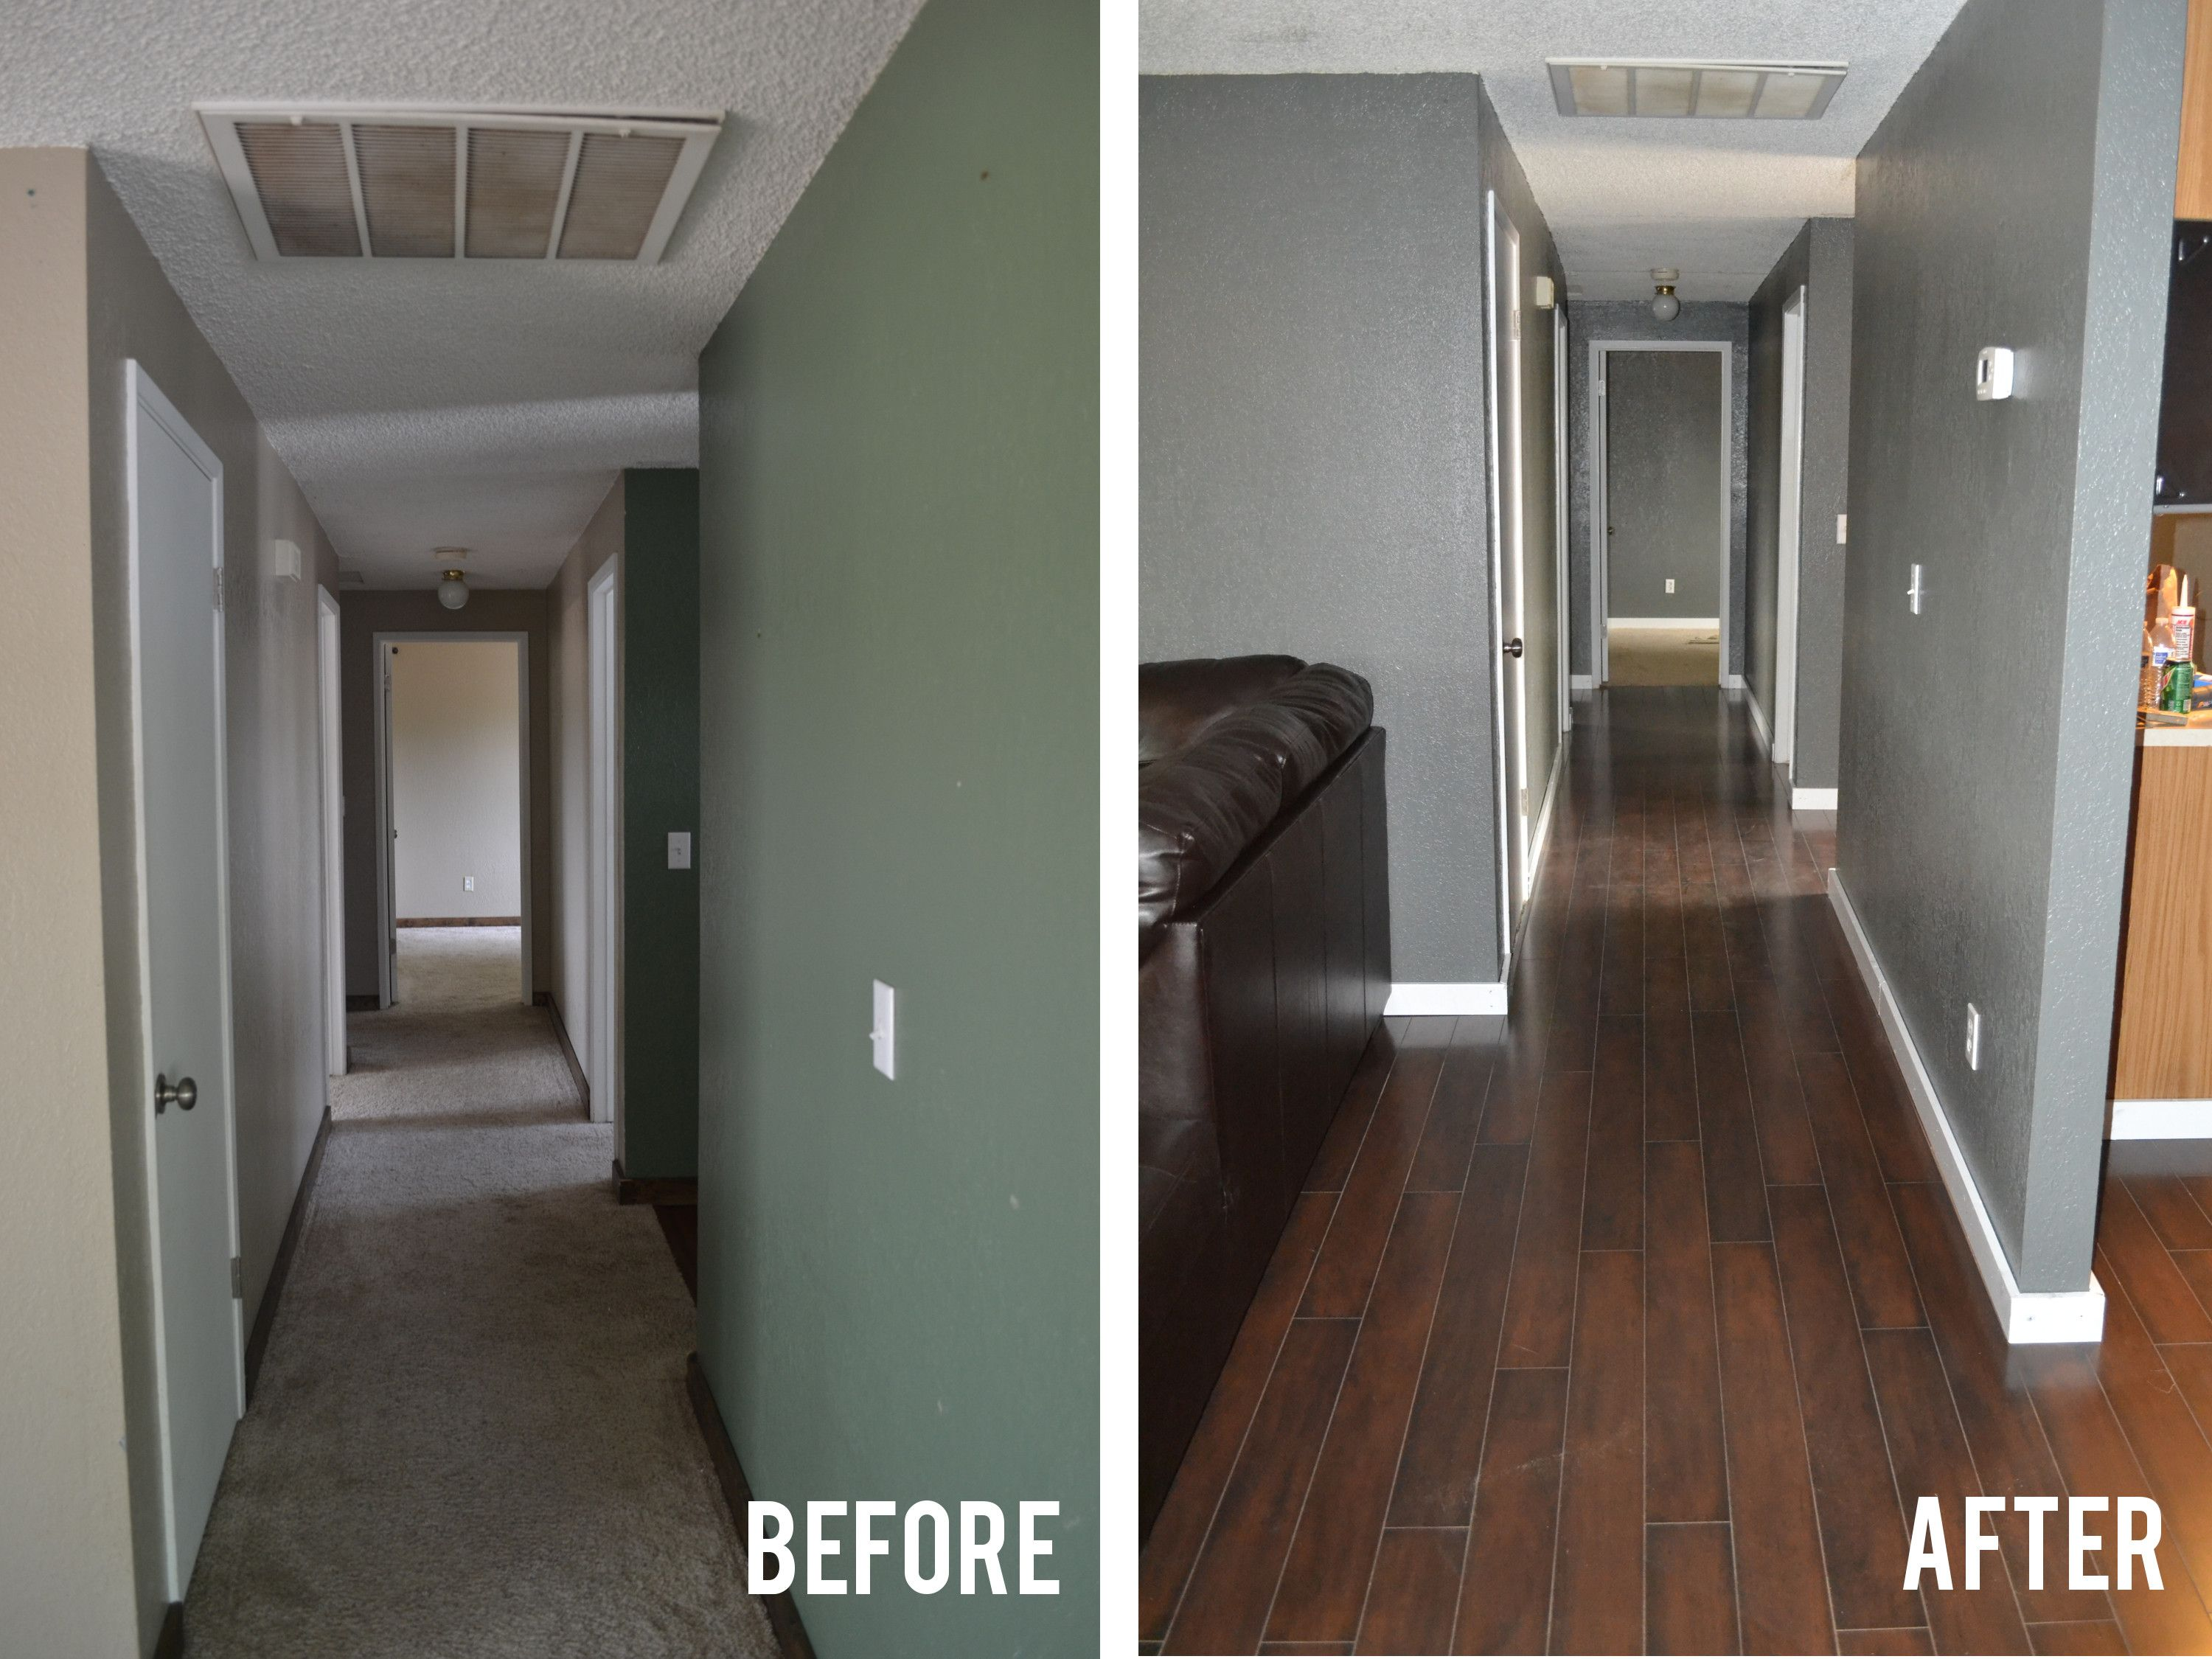 full installation new basement choosing cleaning size laminate allen design collection in for flooring wood of buying and bathroom roth installing tips removing home picking cutting floors awesome fitting